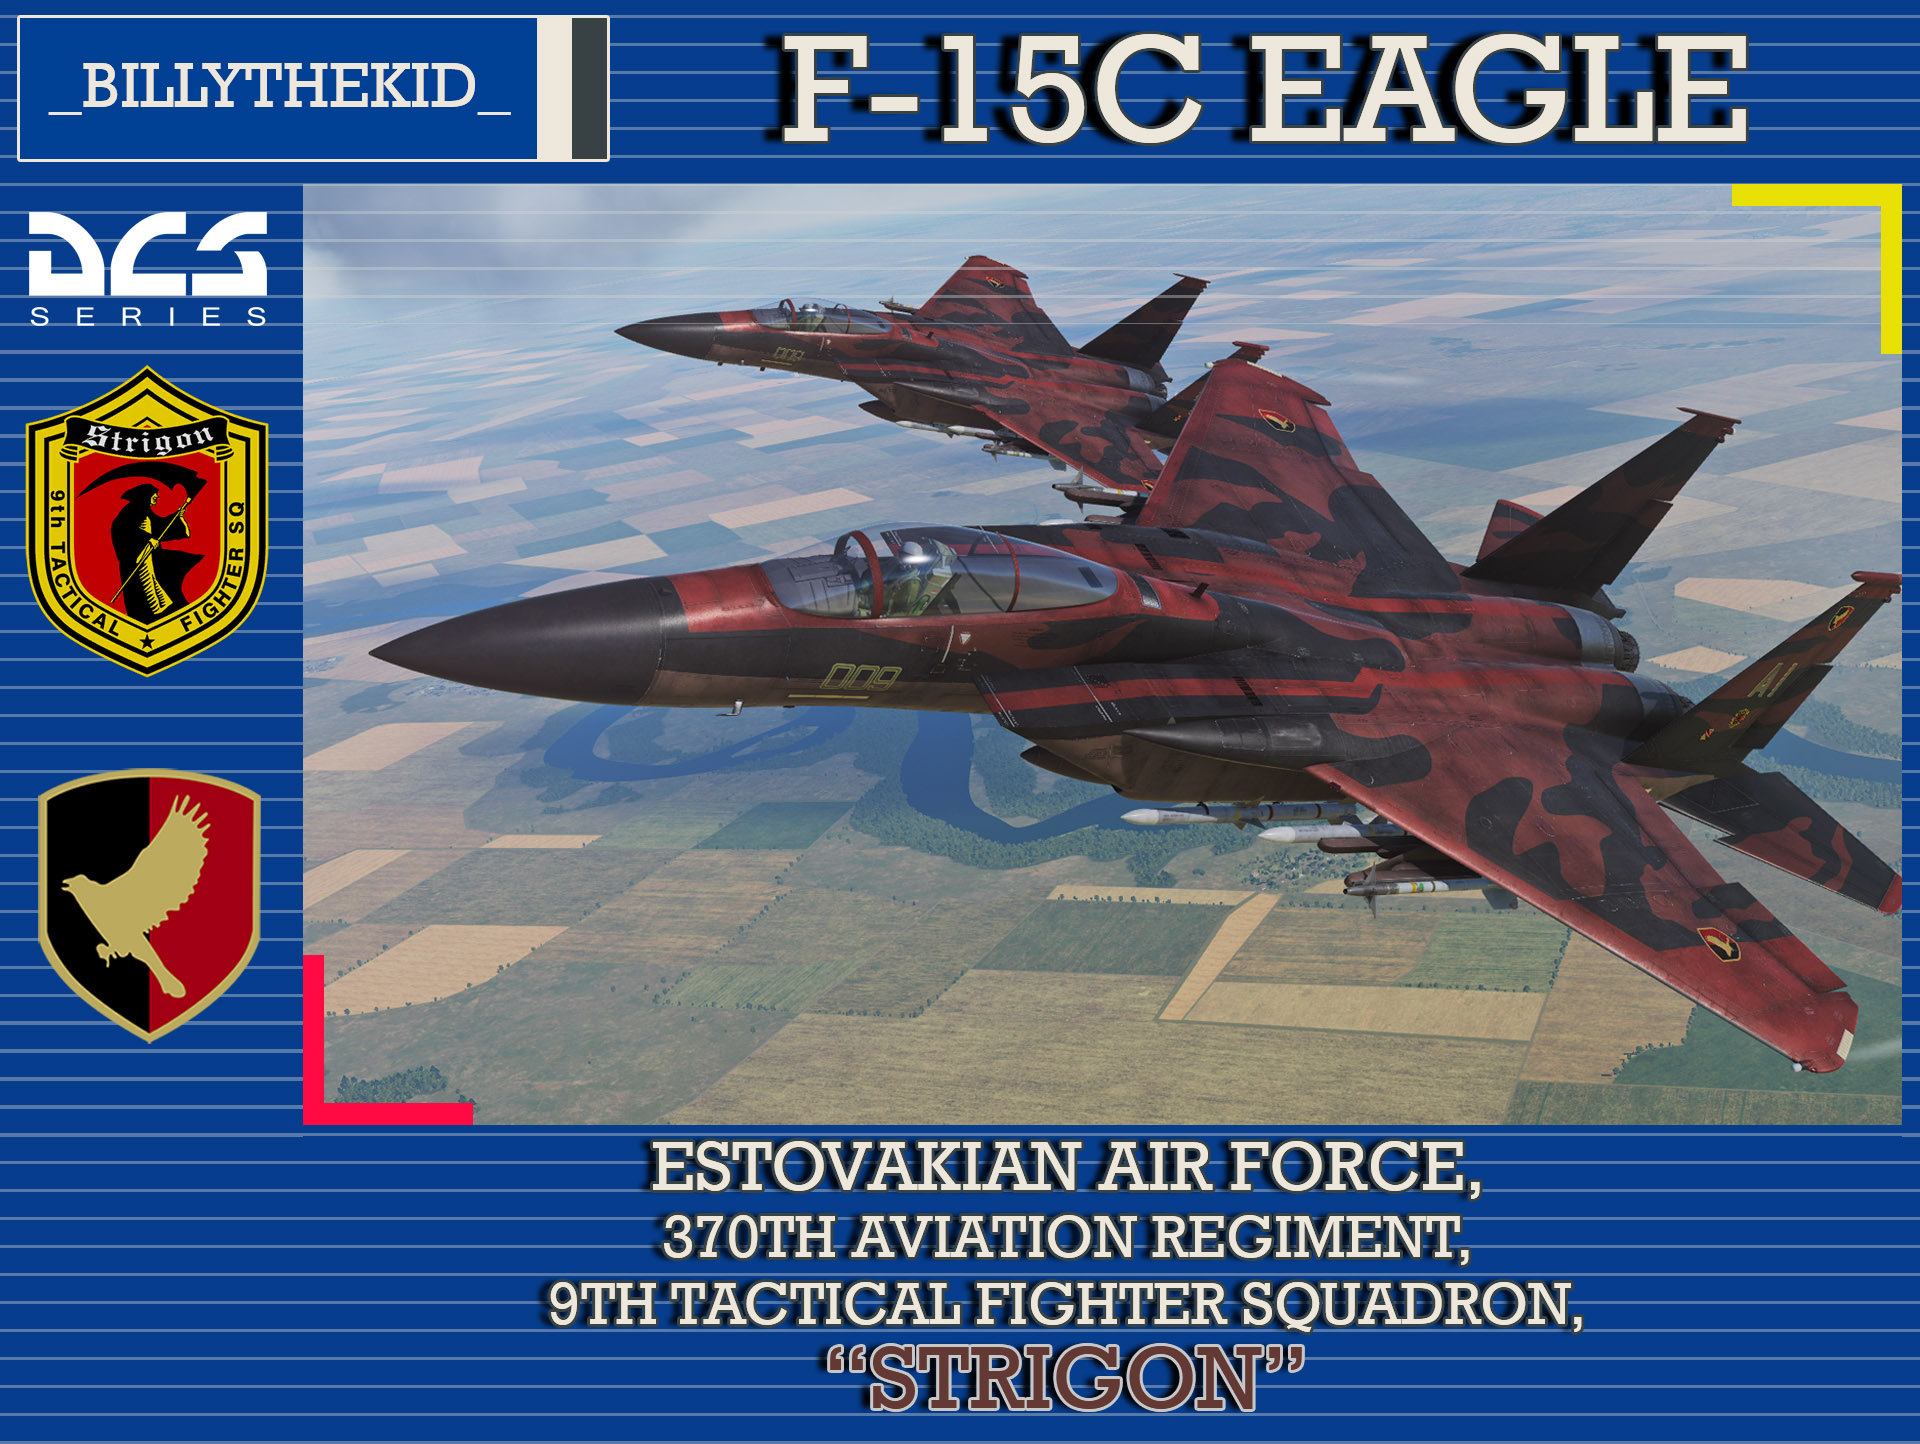 Ace Combat - Estovakian Air Force Strigon Team F-15C Eagle